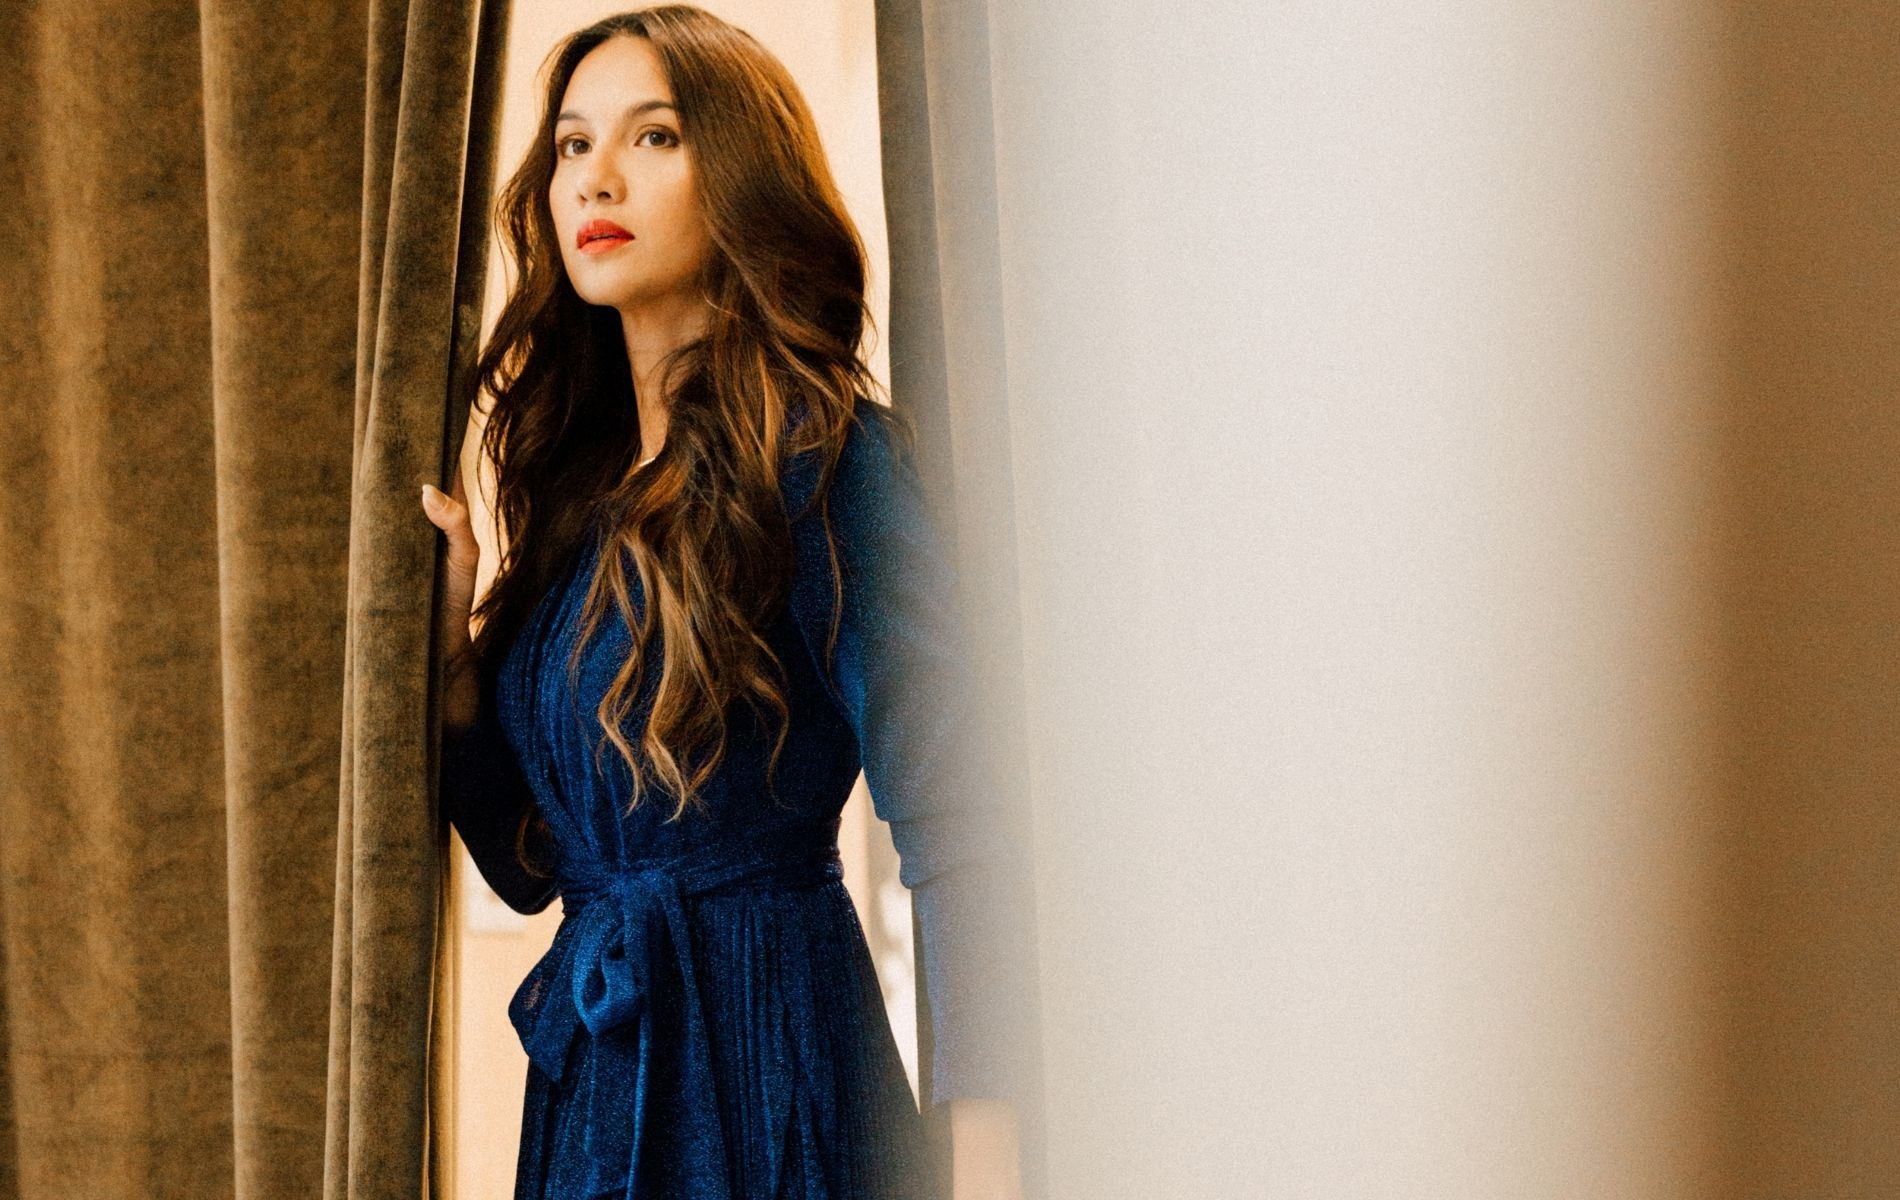 Malaysian Fashion Designer Shaleen Cheah On Strength In The Face Of Adversity